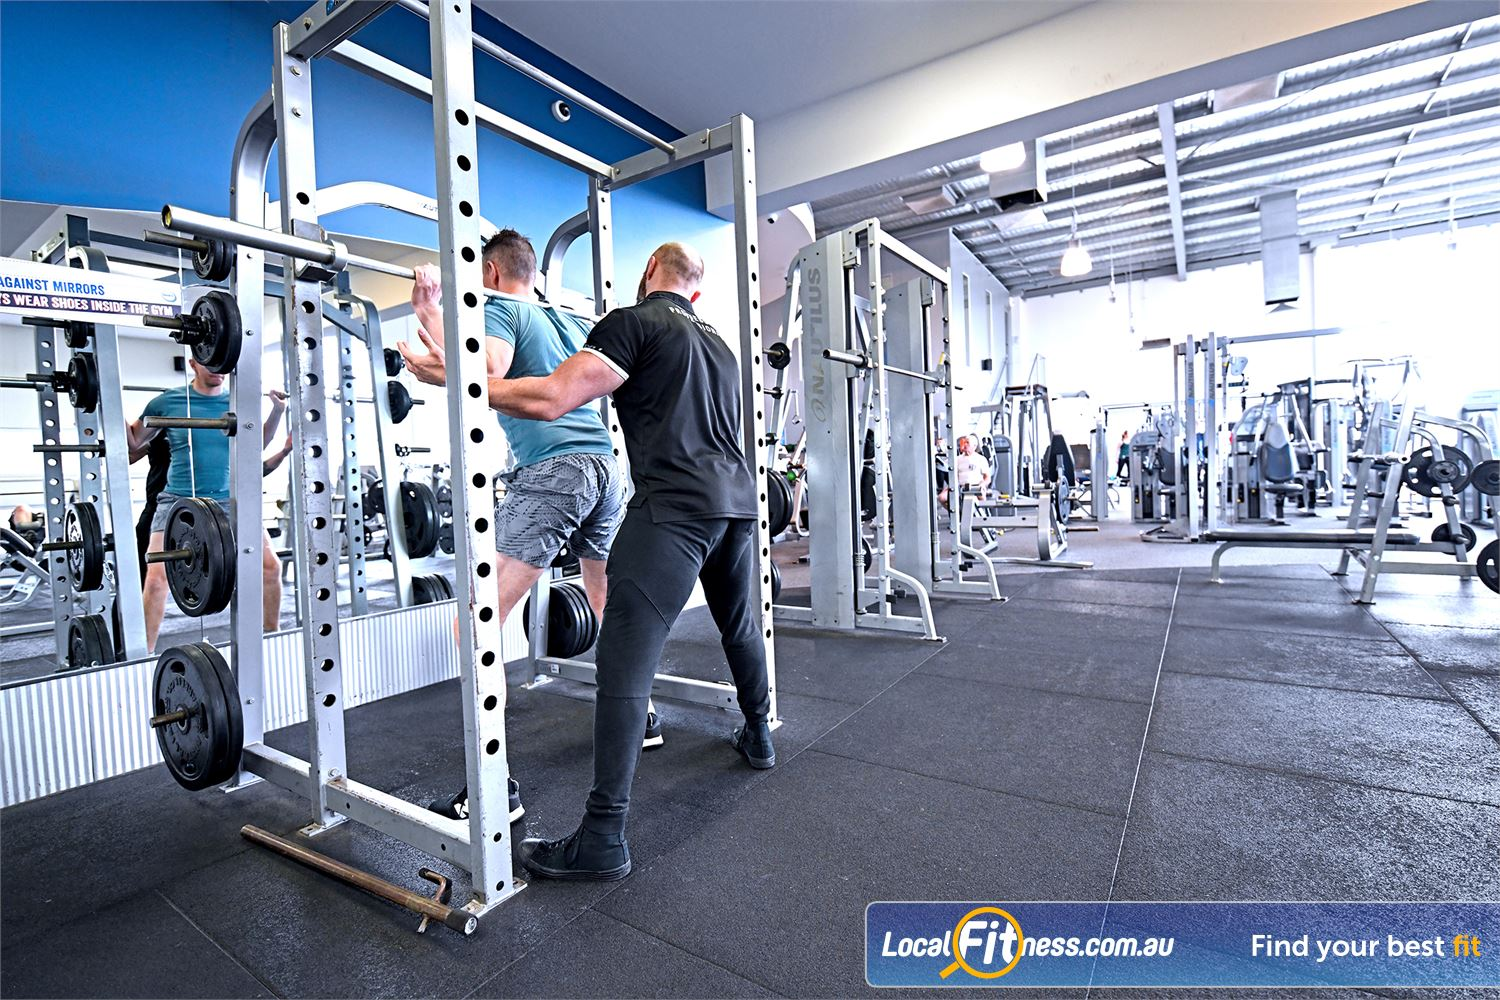 Goodlife Health Clubs Geelong Our free-weights area includes multiple lifting racks.